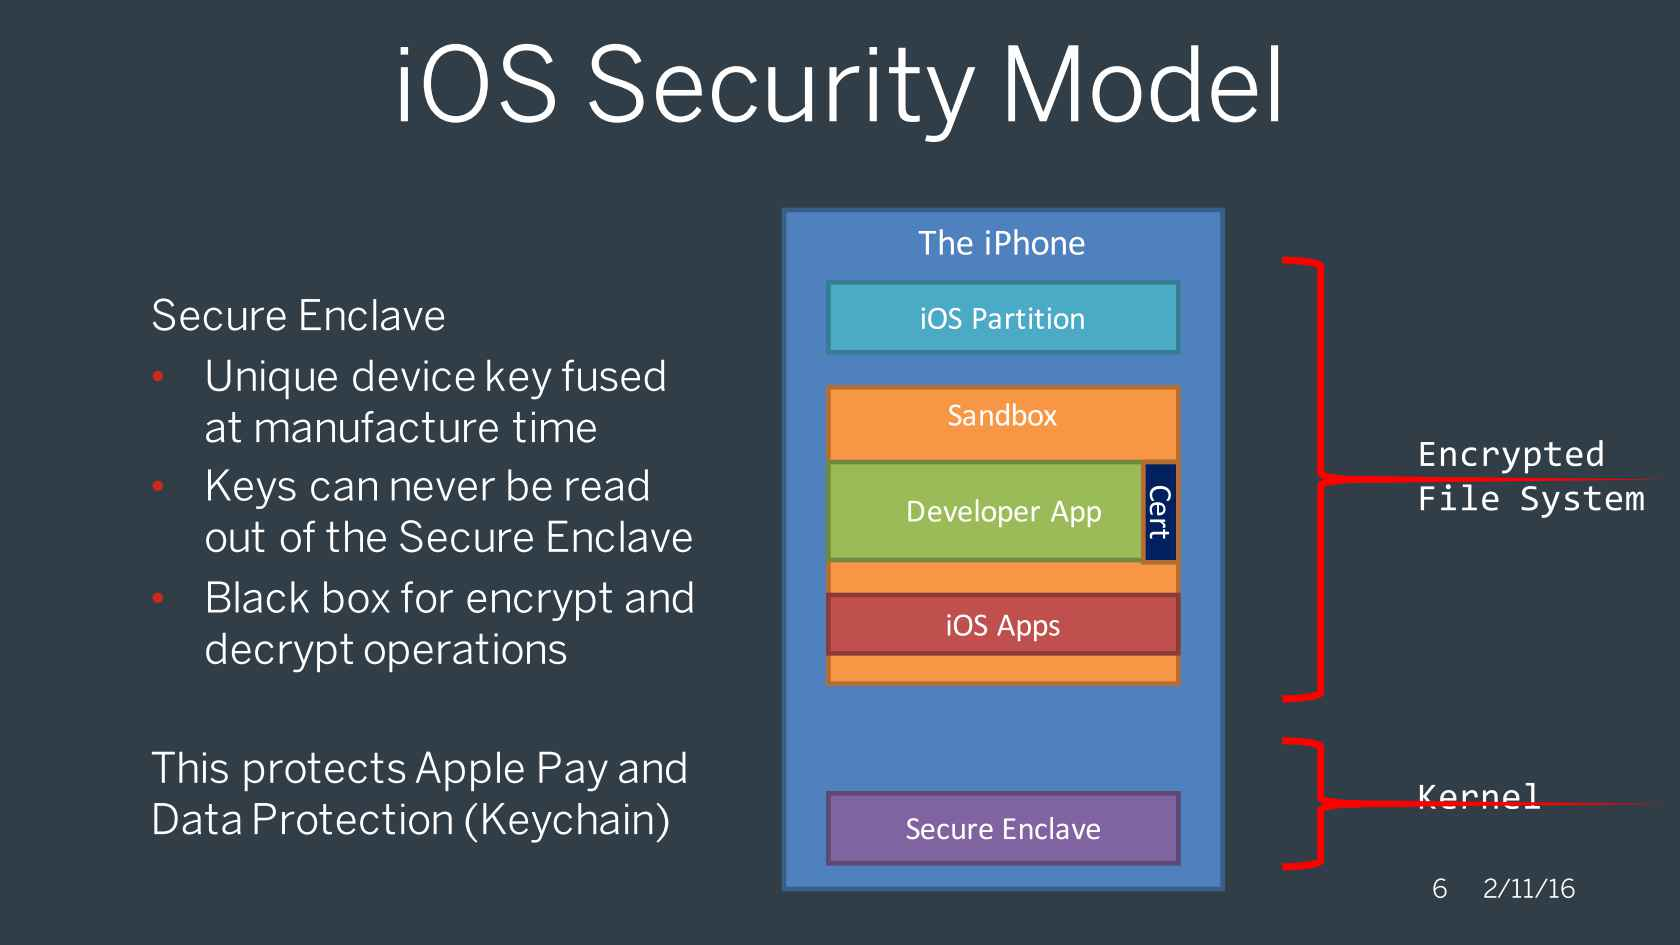 iOS security model